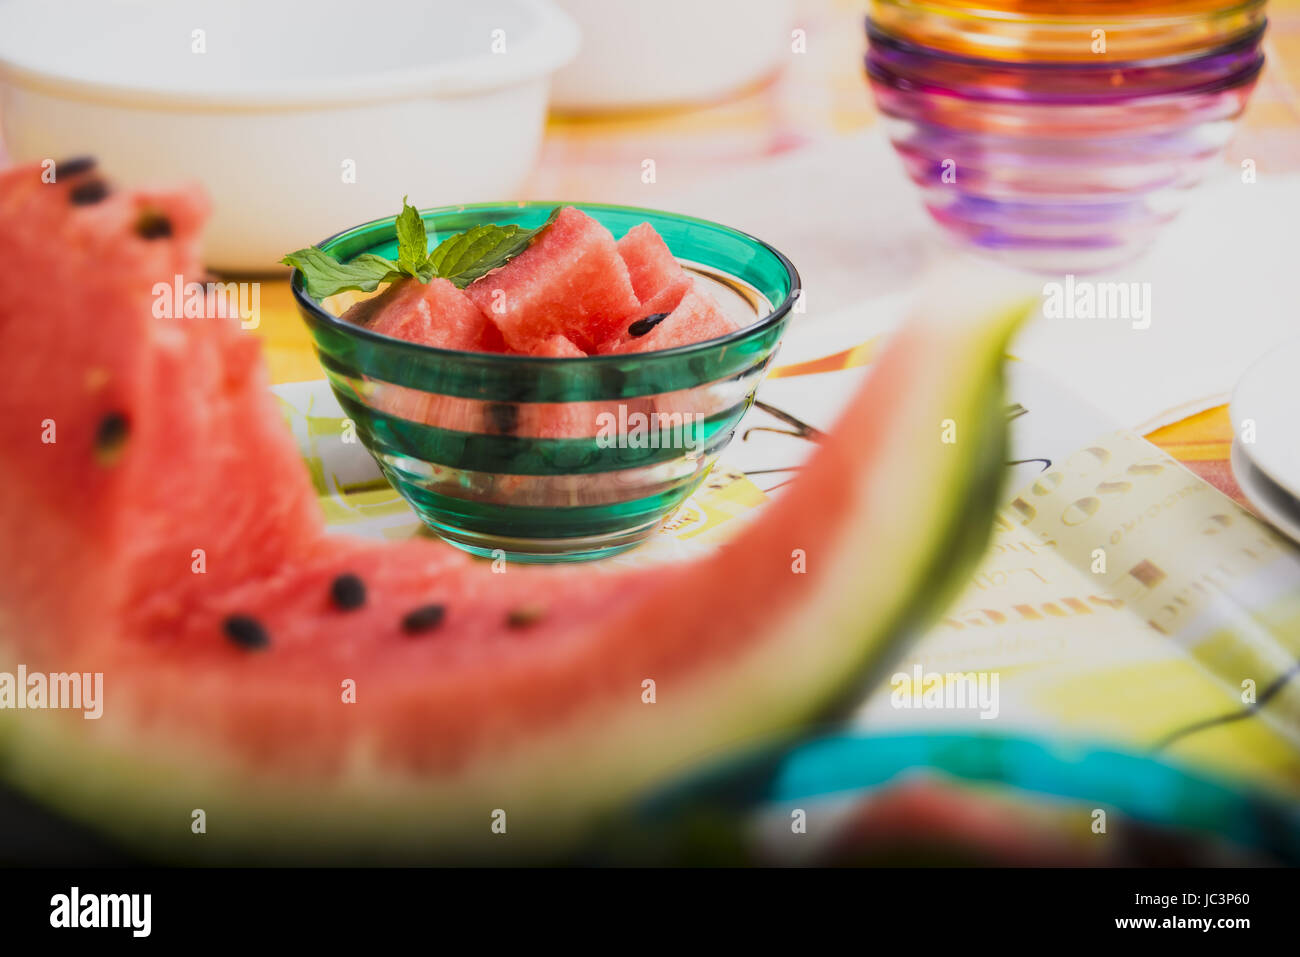 Watermelon slice and bowl pieces on the second floor - Stock Image